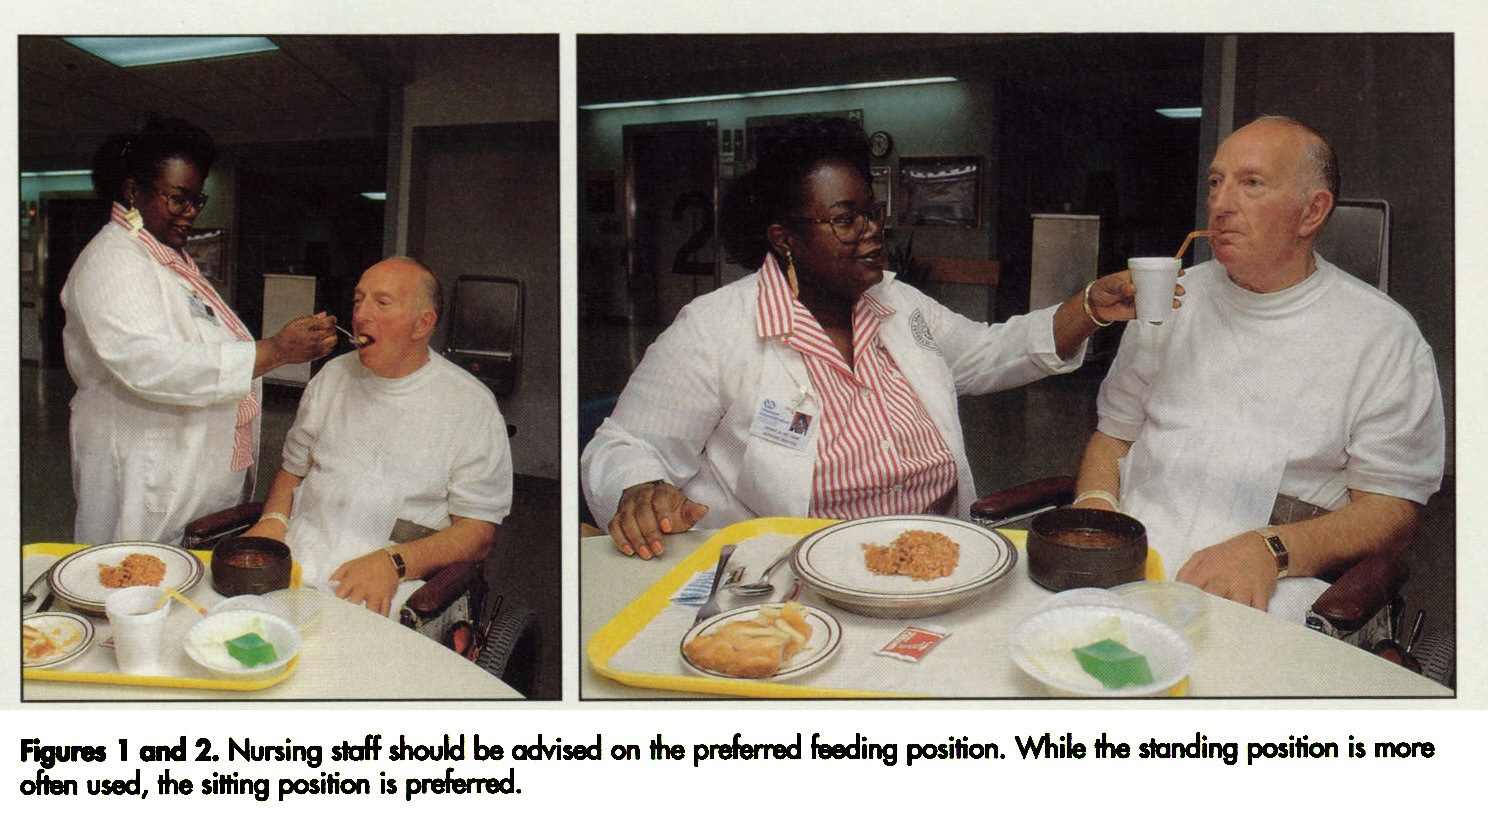 Figures 1 and 2. Nursing staff should be advised on the preferred feeding position. While the standing position is more often used, the sitting position is preferred.